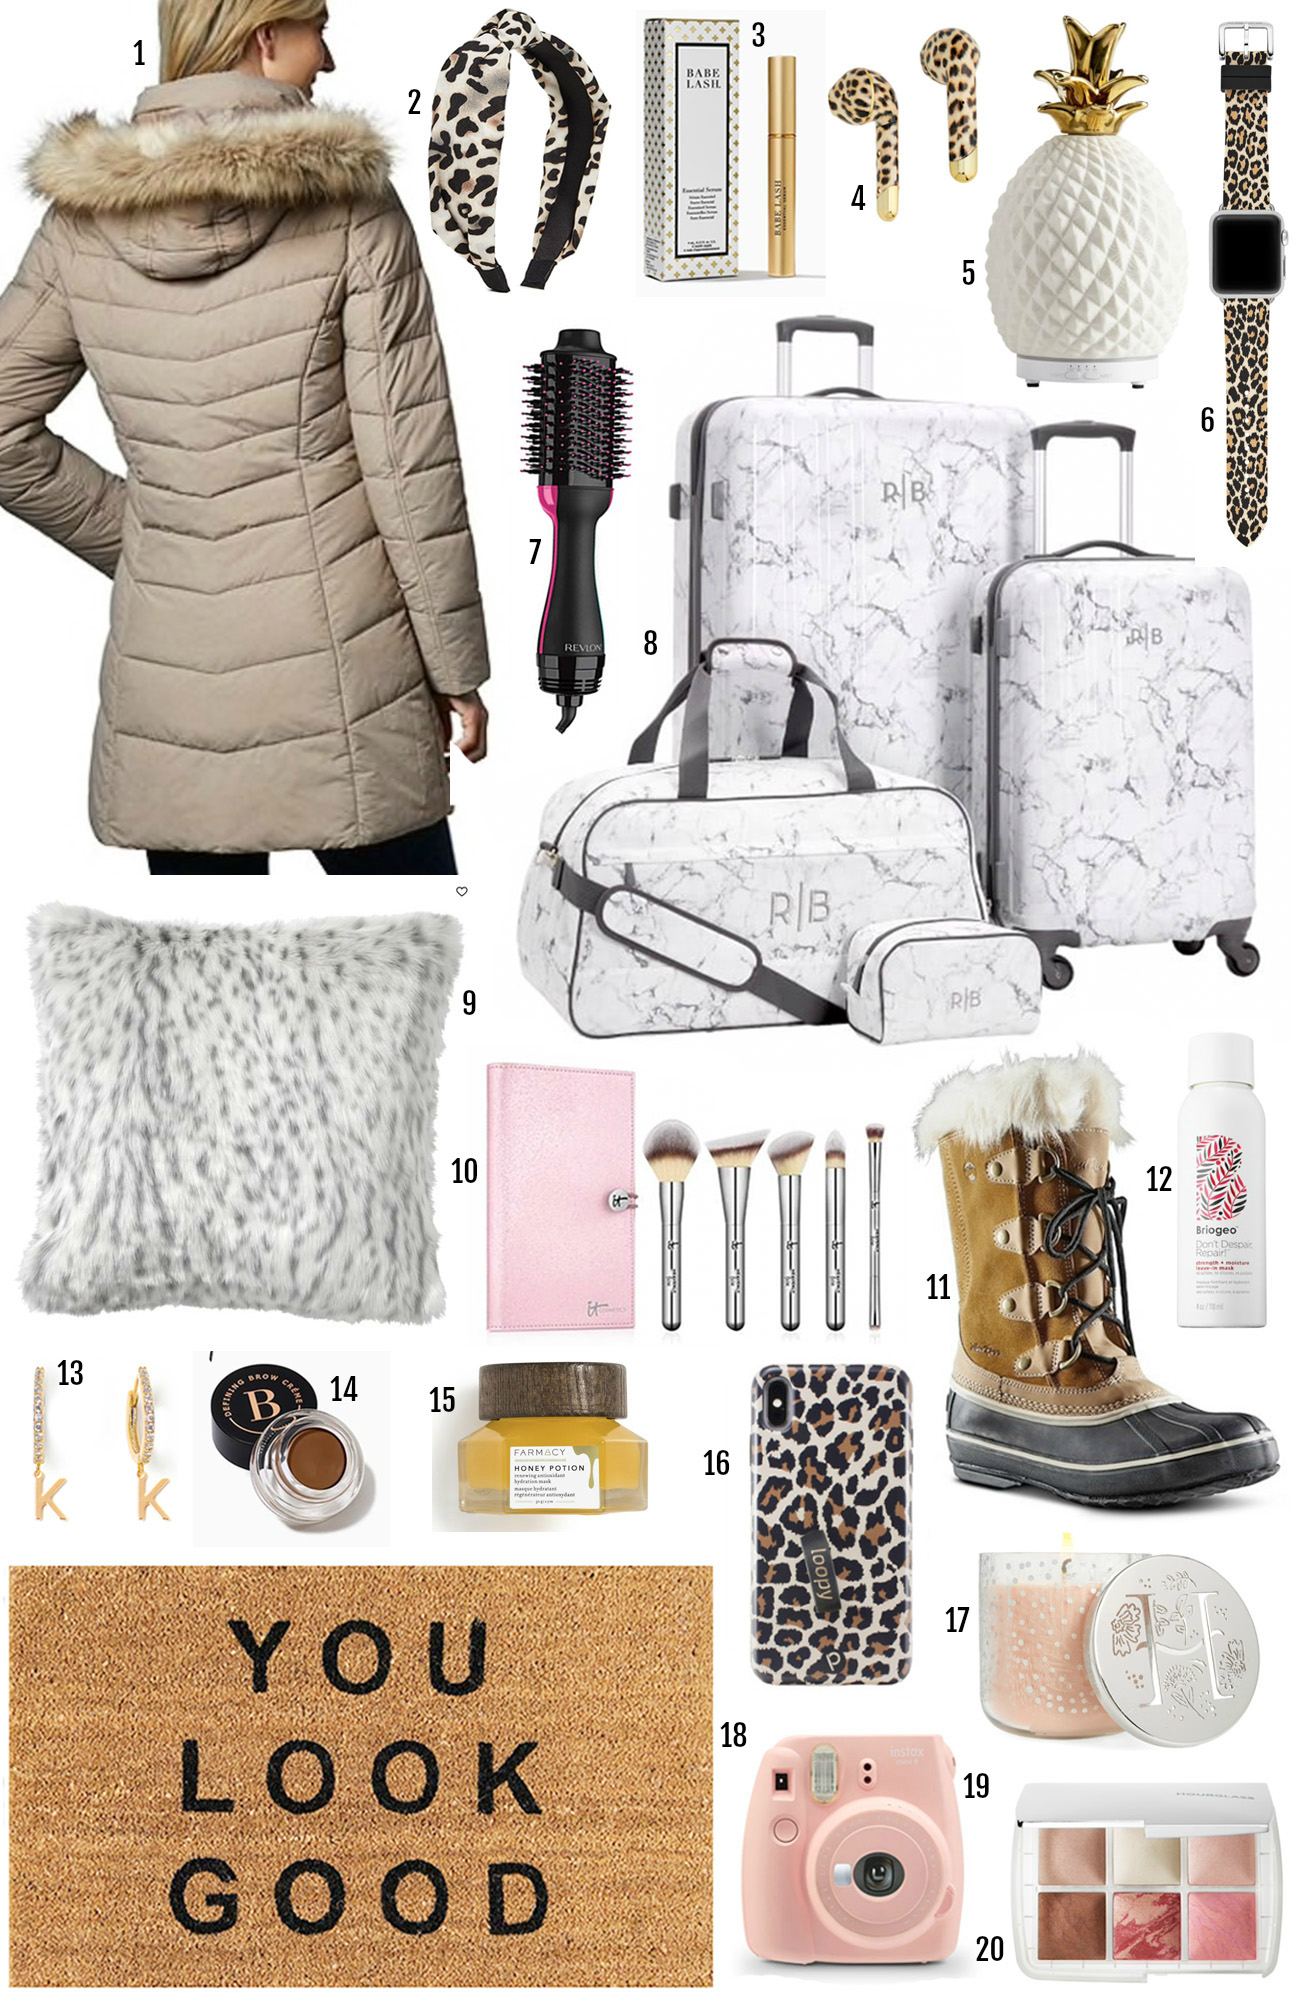 stocking stuffers for her | stocking stuffers | lifestyle blogger Mash Elle | what to buy for her | gf gift | mom gift | SIL gift | MIL Gift | Polaroid camera